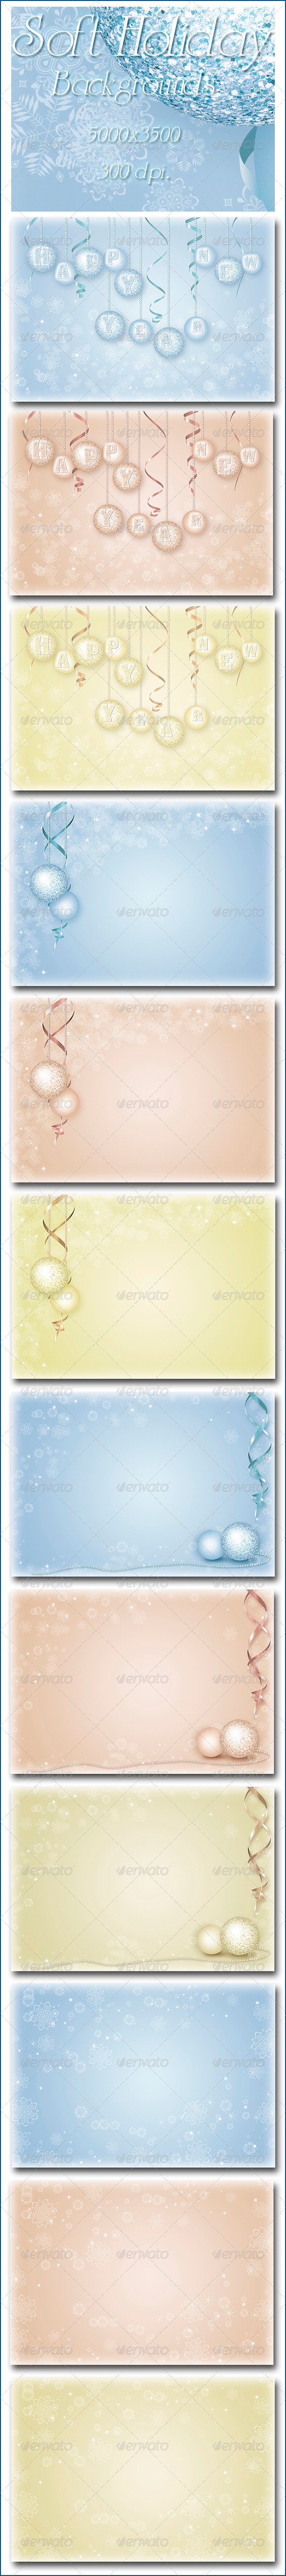 Soft Holiday Backgrounds - Abstract Backgrounds